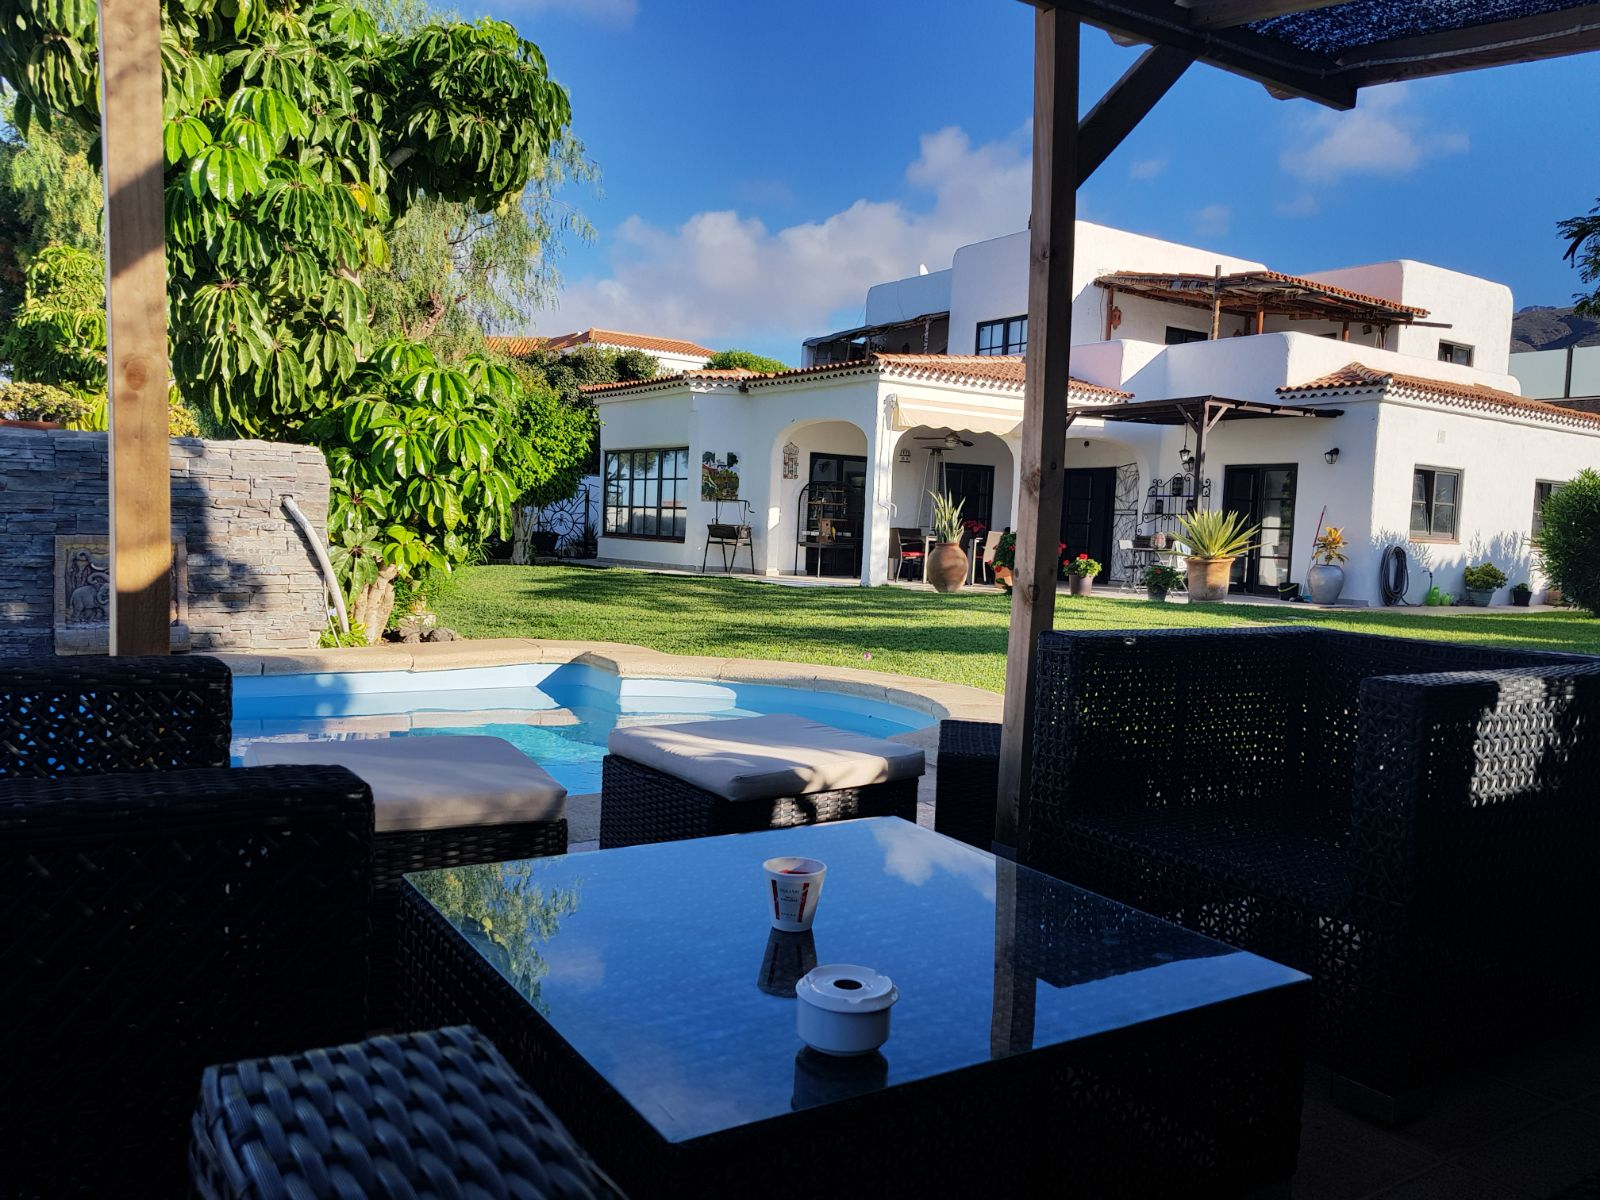 Properties for Sale in Tenerife, Canary Islands, Spain | SylkWayStar Real Estate. Villa 5 bedrooms Playa Paraiso. Image-25641